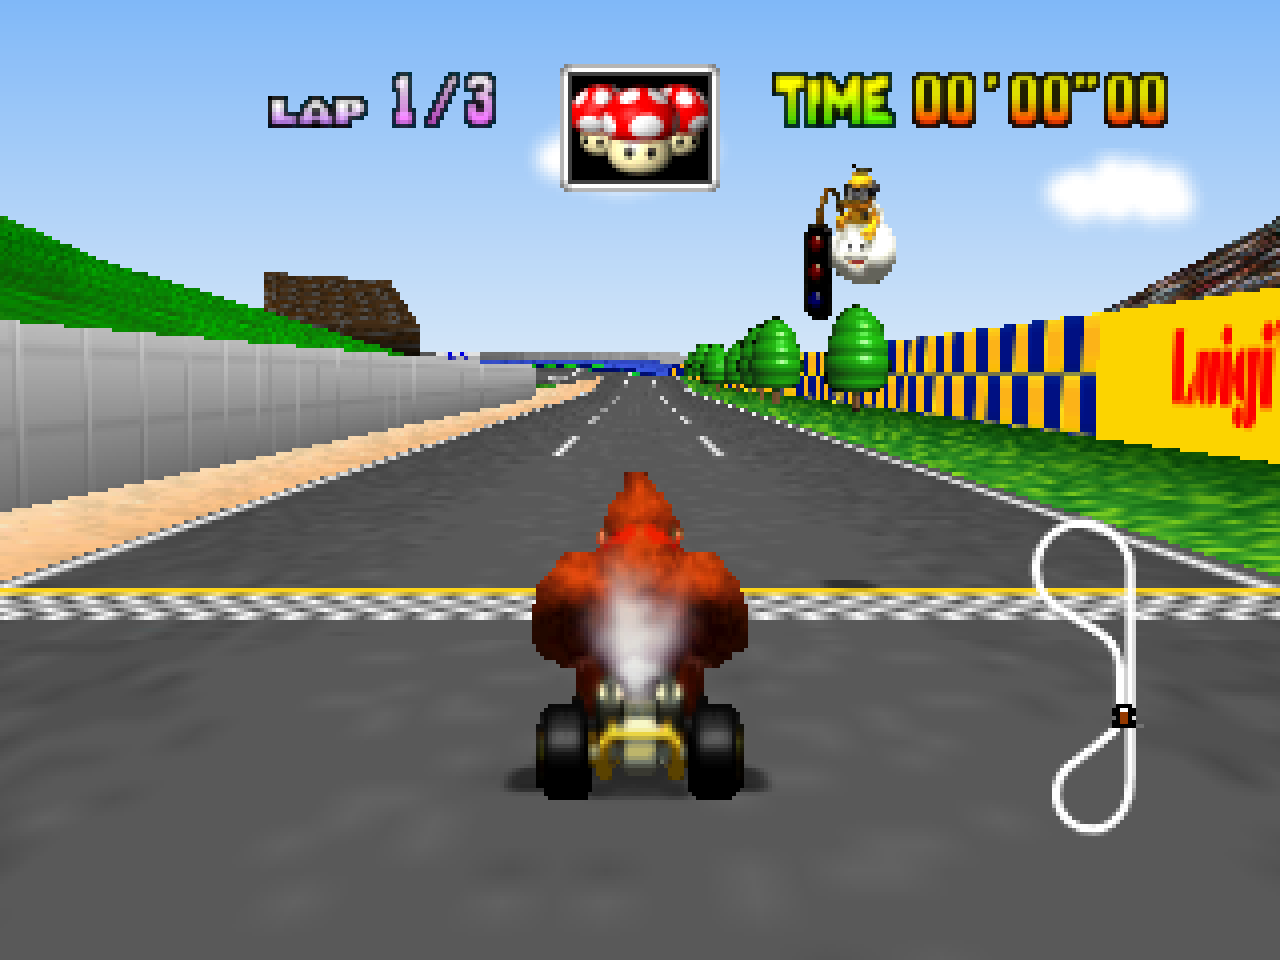 https://s3.eu-west-3.amazonaws.com/games.anthony-dessalles.com/Mario Kart 64 N64 2020 - Screenshots/Mario Kart 64-201118-215817.png